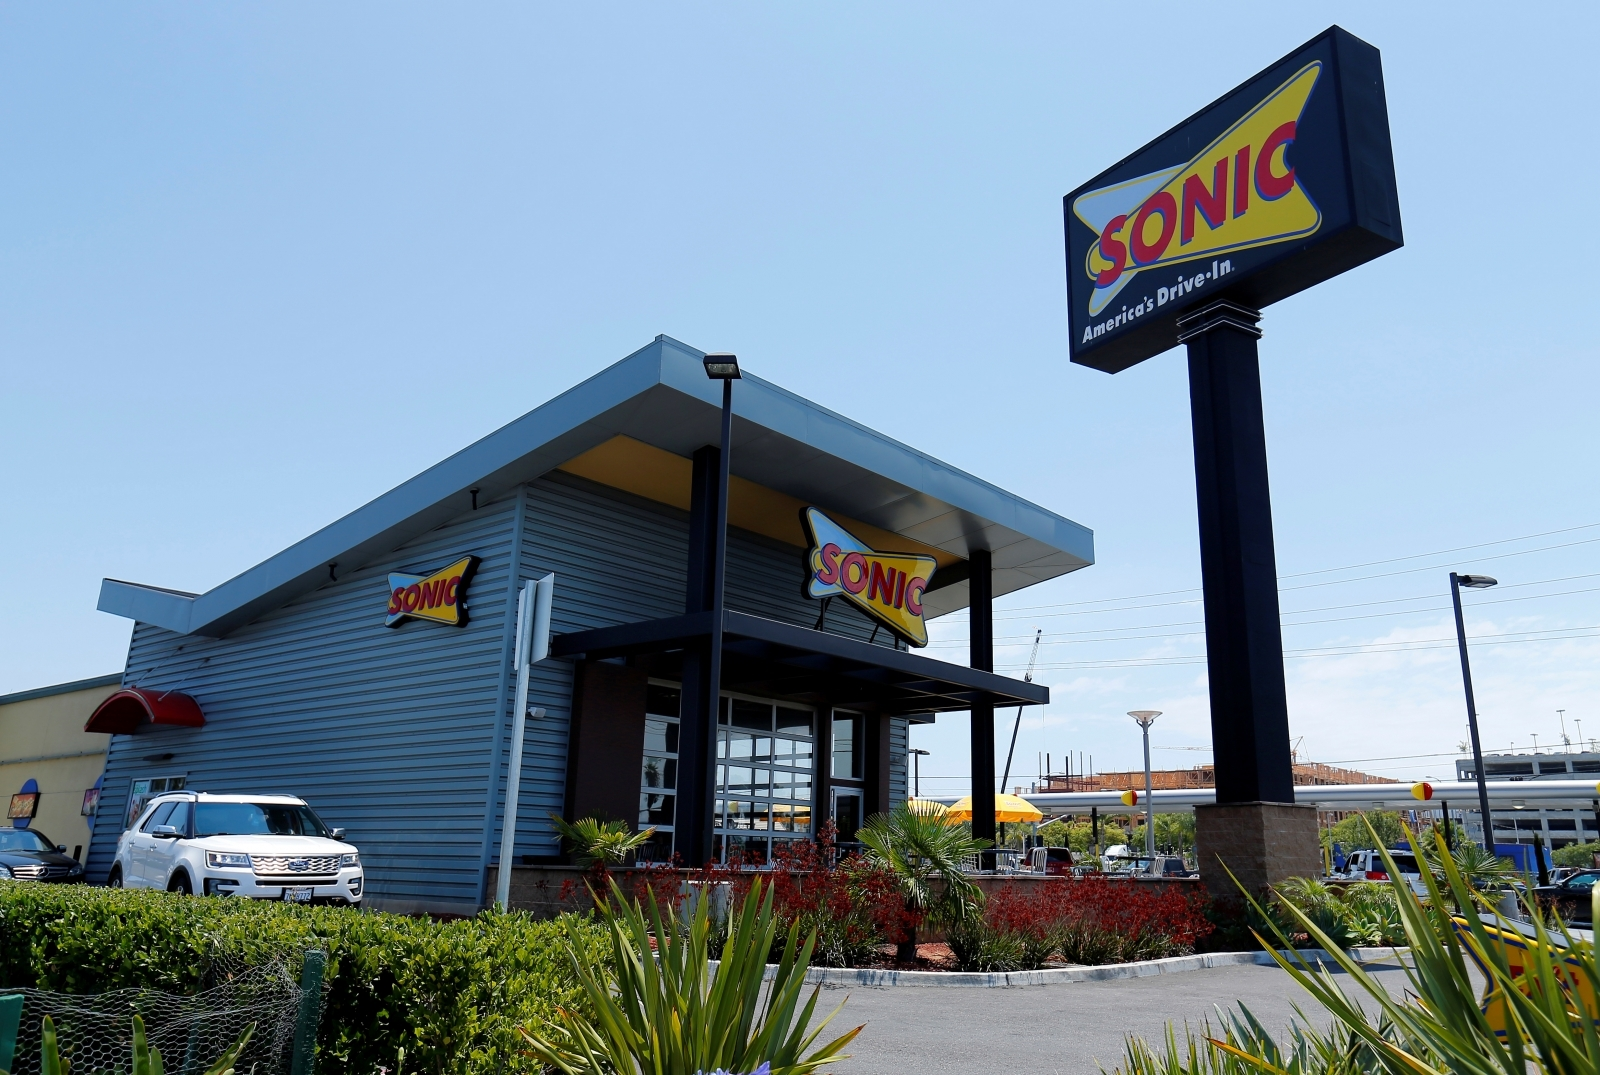 SONIC investigates data breach involving customer credit cards